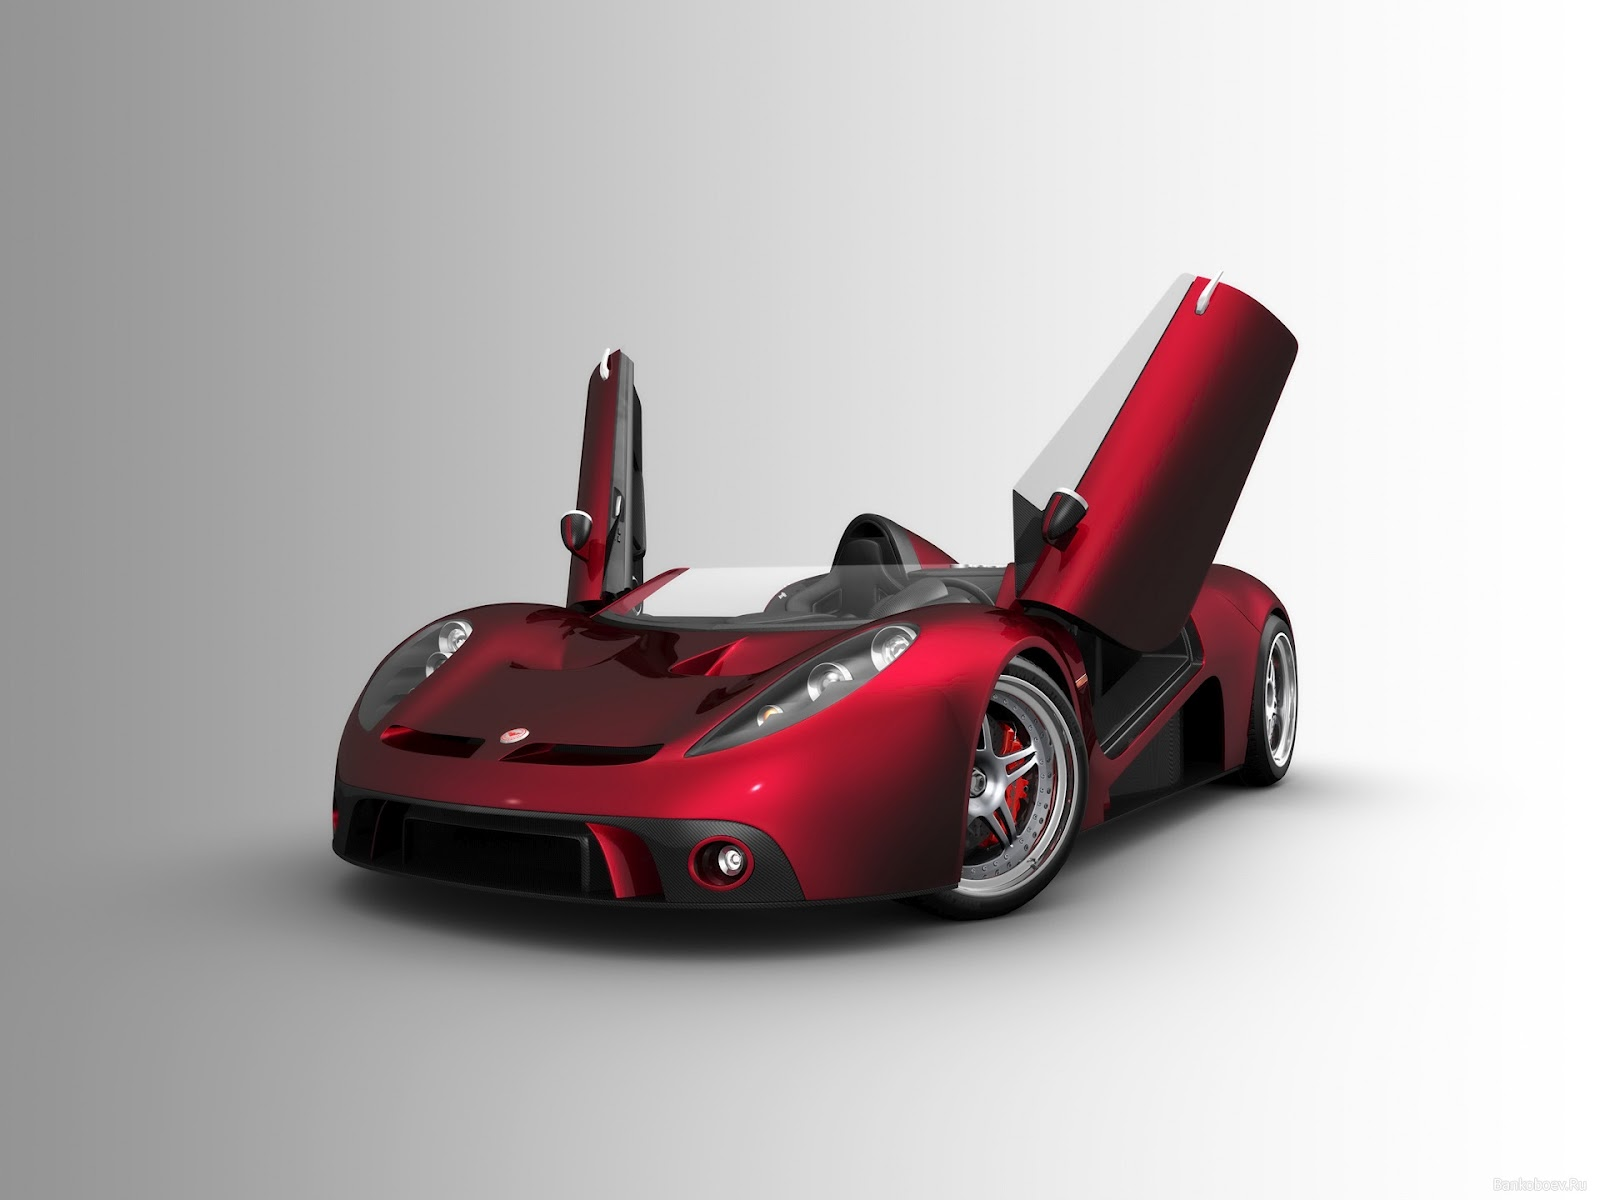 Free HD 3D Car's Wallpapers